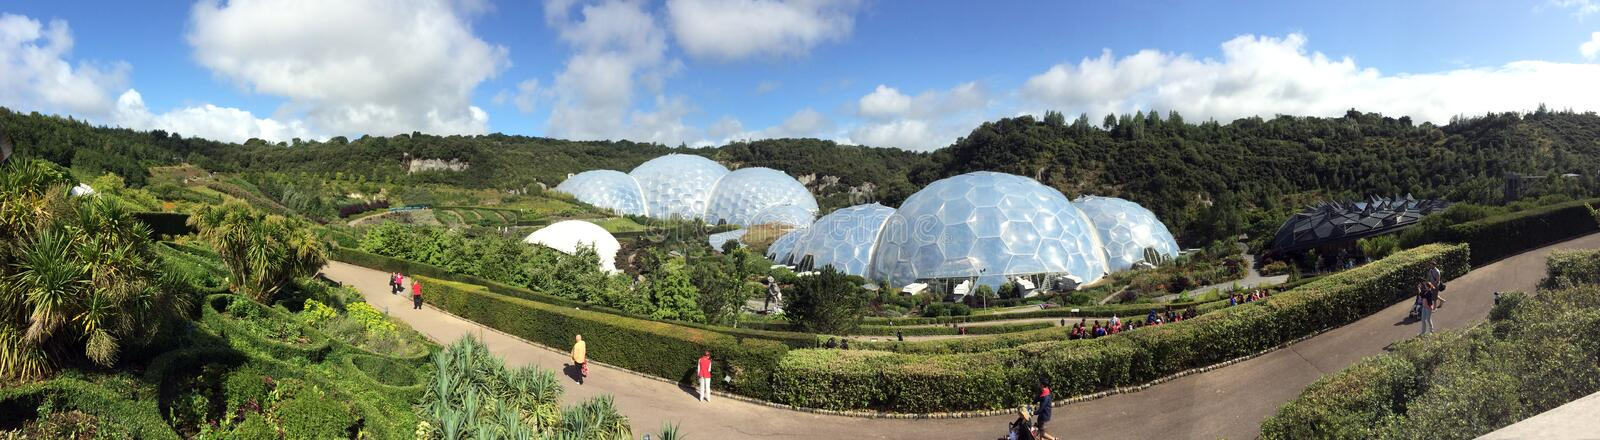 Panorama d'Eden Project photographie stock